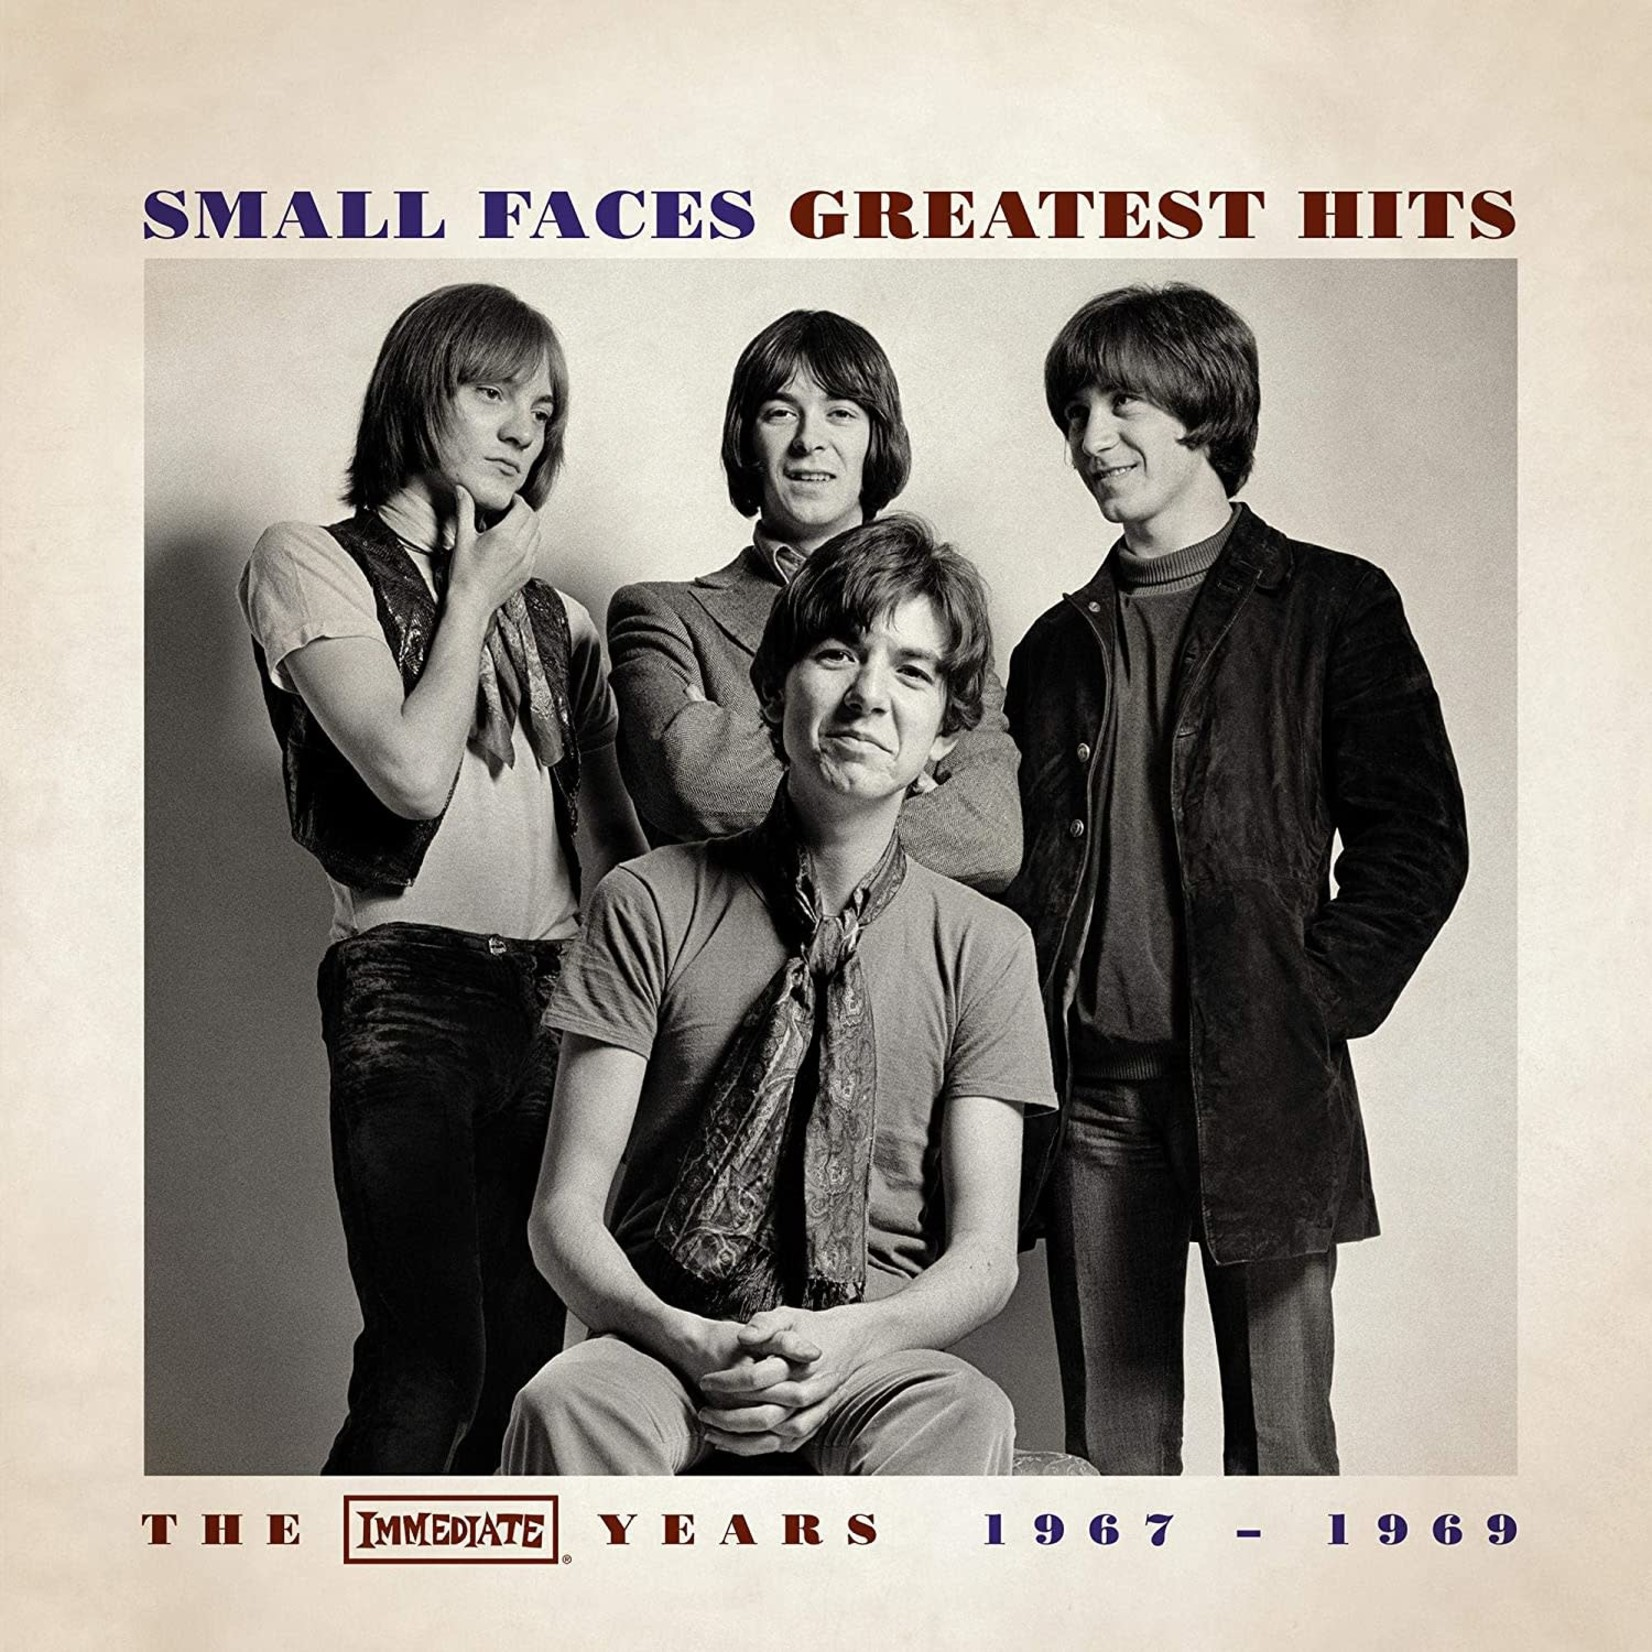 SMALL FACES GREATEST HITS - THE IMMEDIATE YEARS 1967-1969 (LP)